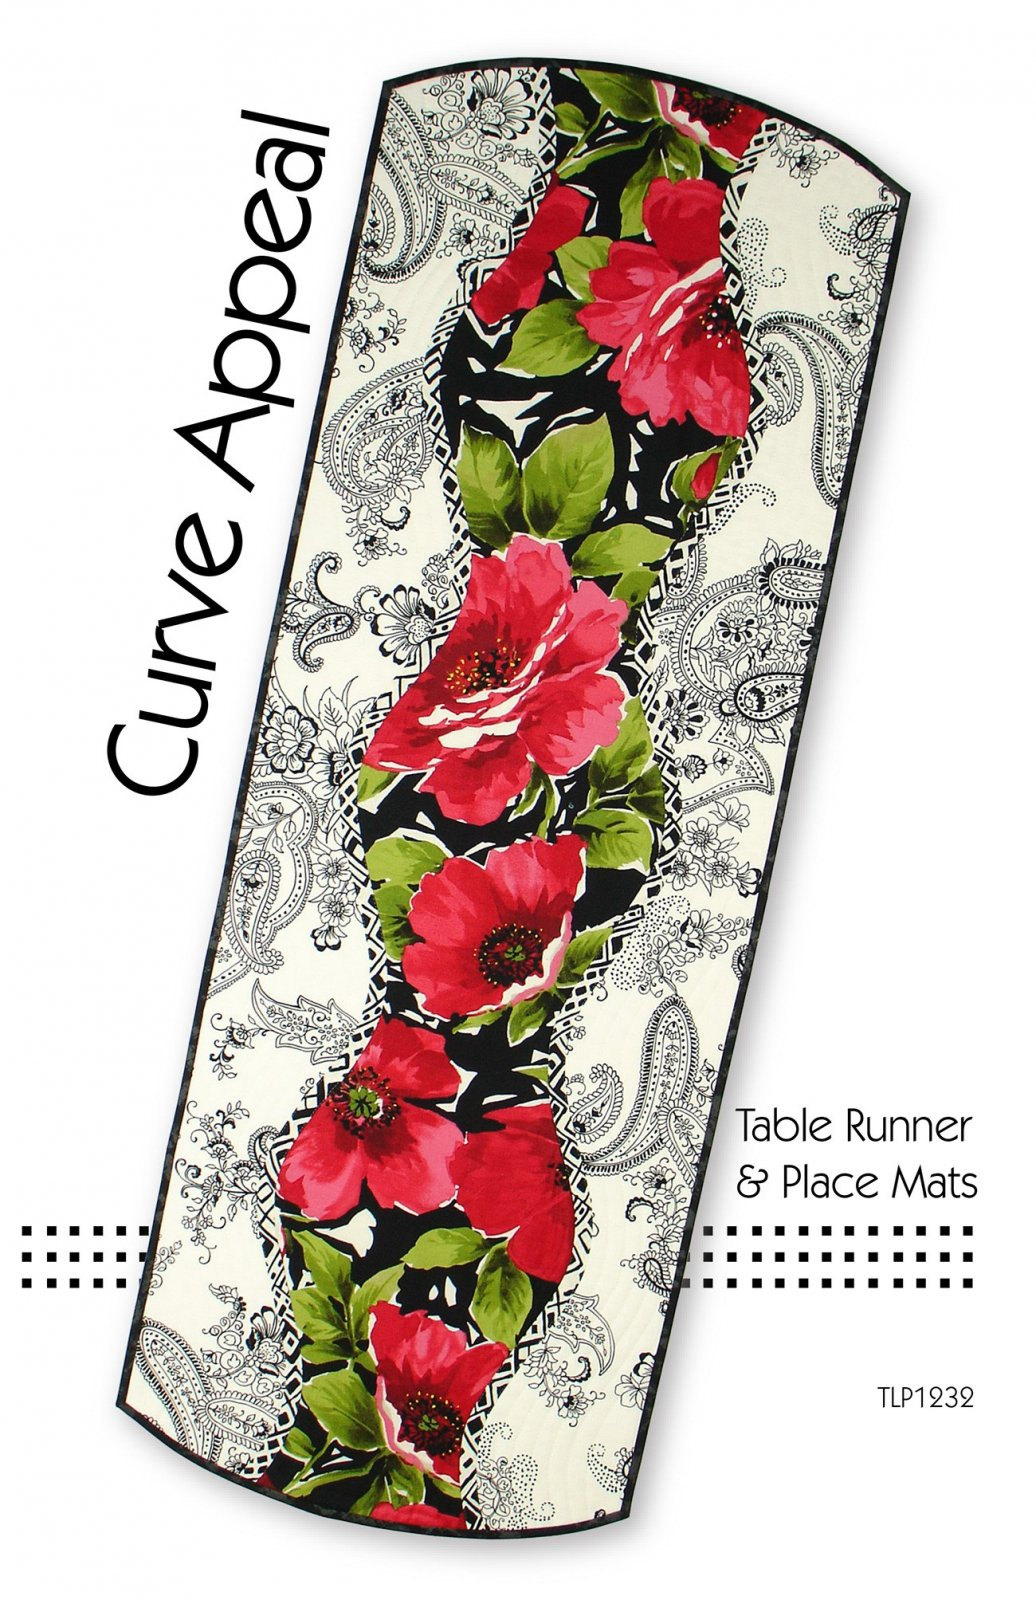 Curve Appeal Table Runner & Place Mats